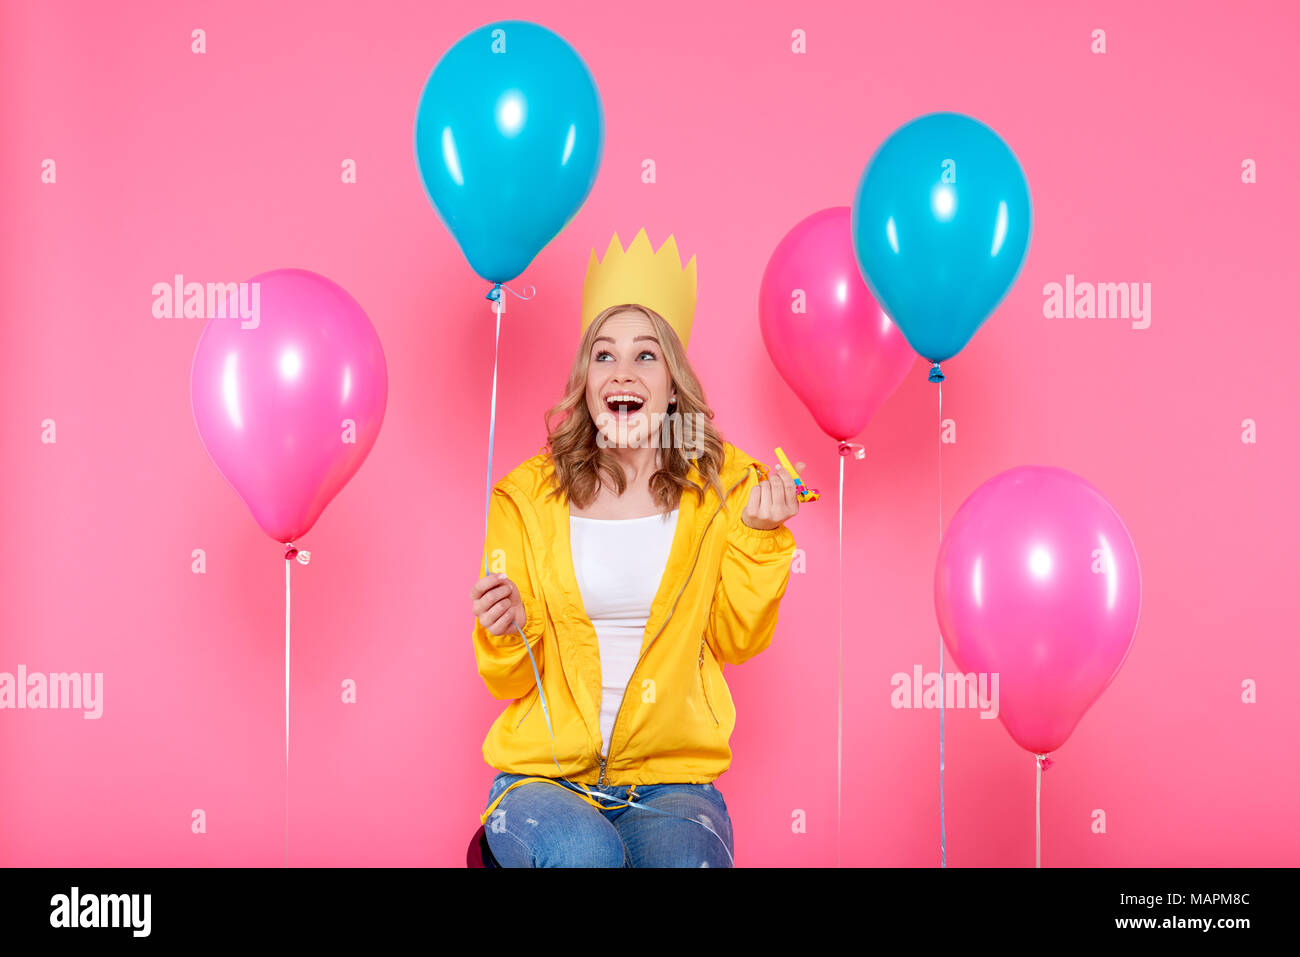 Funny girl in birthday hat, balloons and blowout horn on pastel pink background. Attractive trendy teenager celebrating birthday. - Stock Image